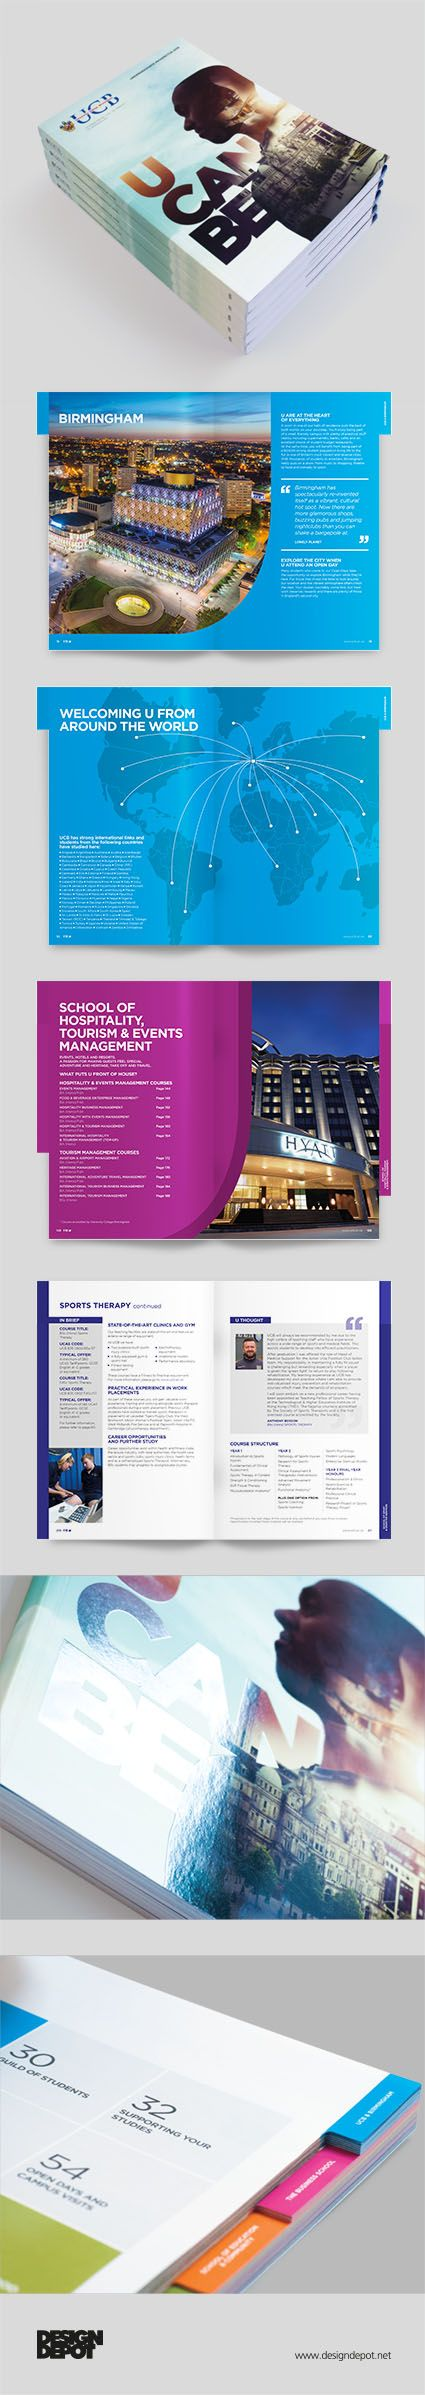 University College Birmingham prospectus, artwork, Birmingham, university, identity, branding, design depot, prospectus, education, graphics, Northamptonshire #DesignDepot